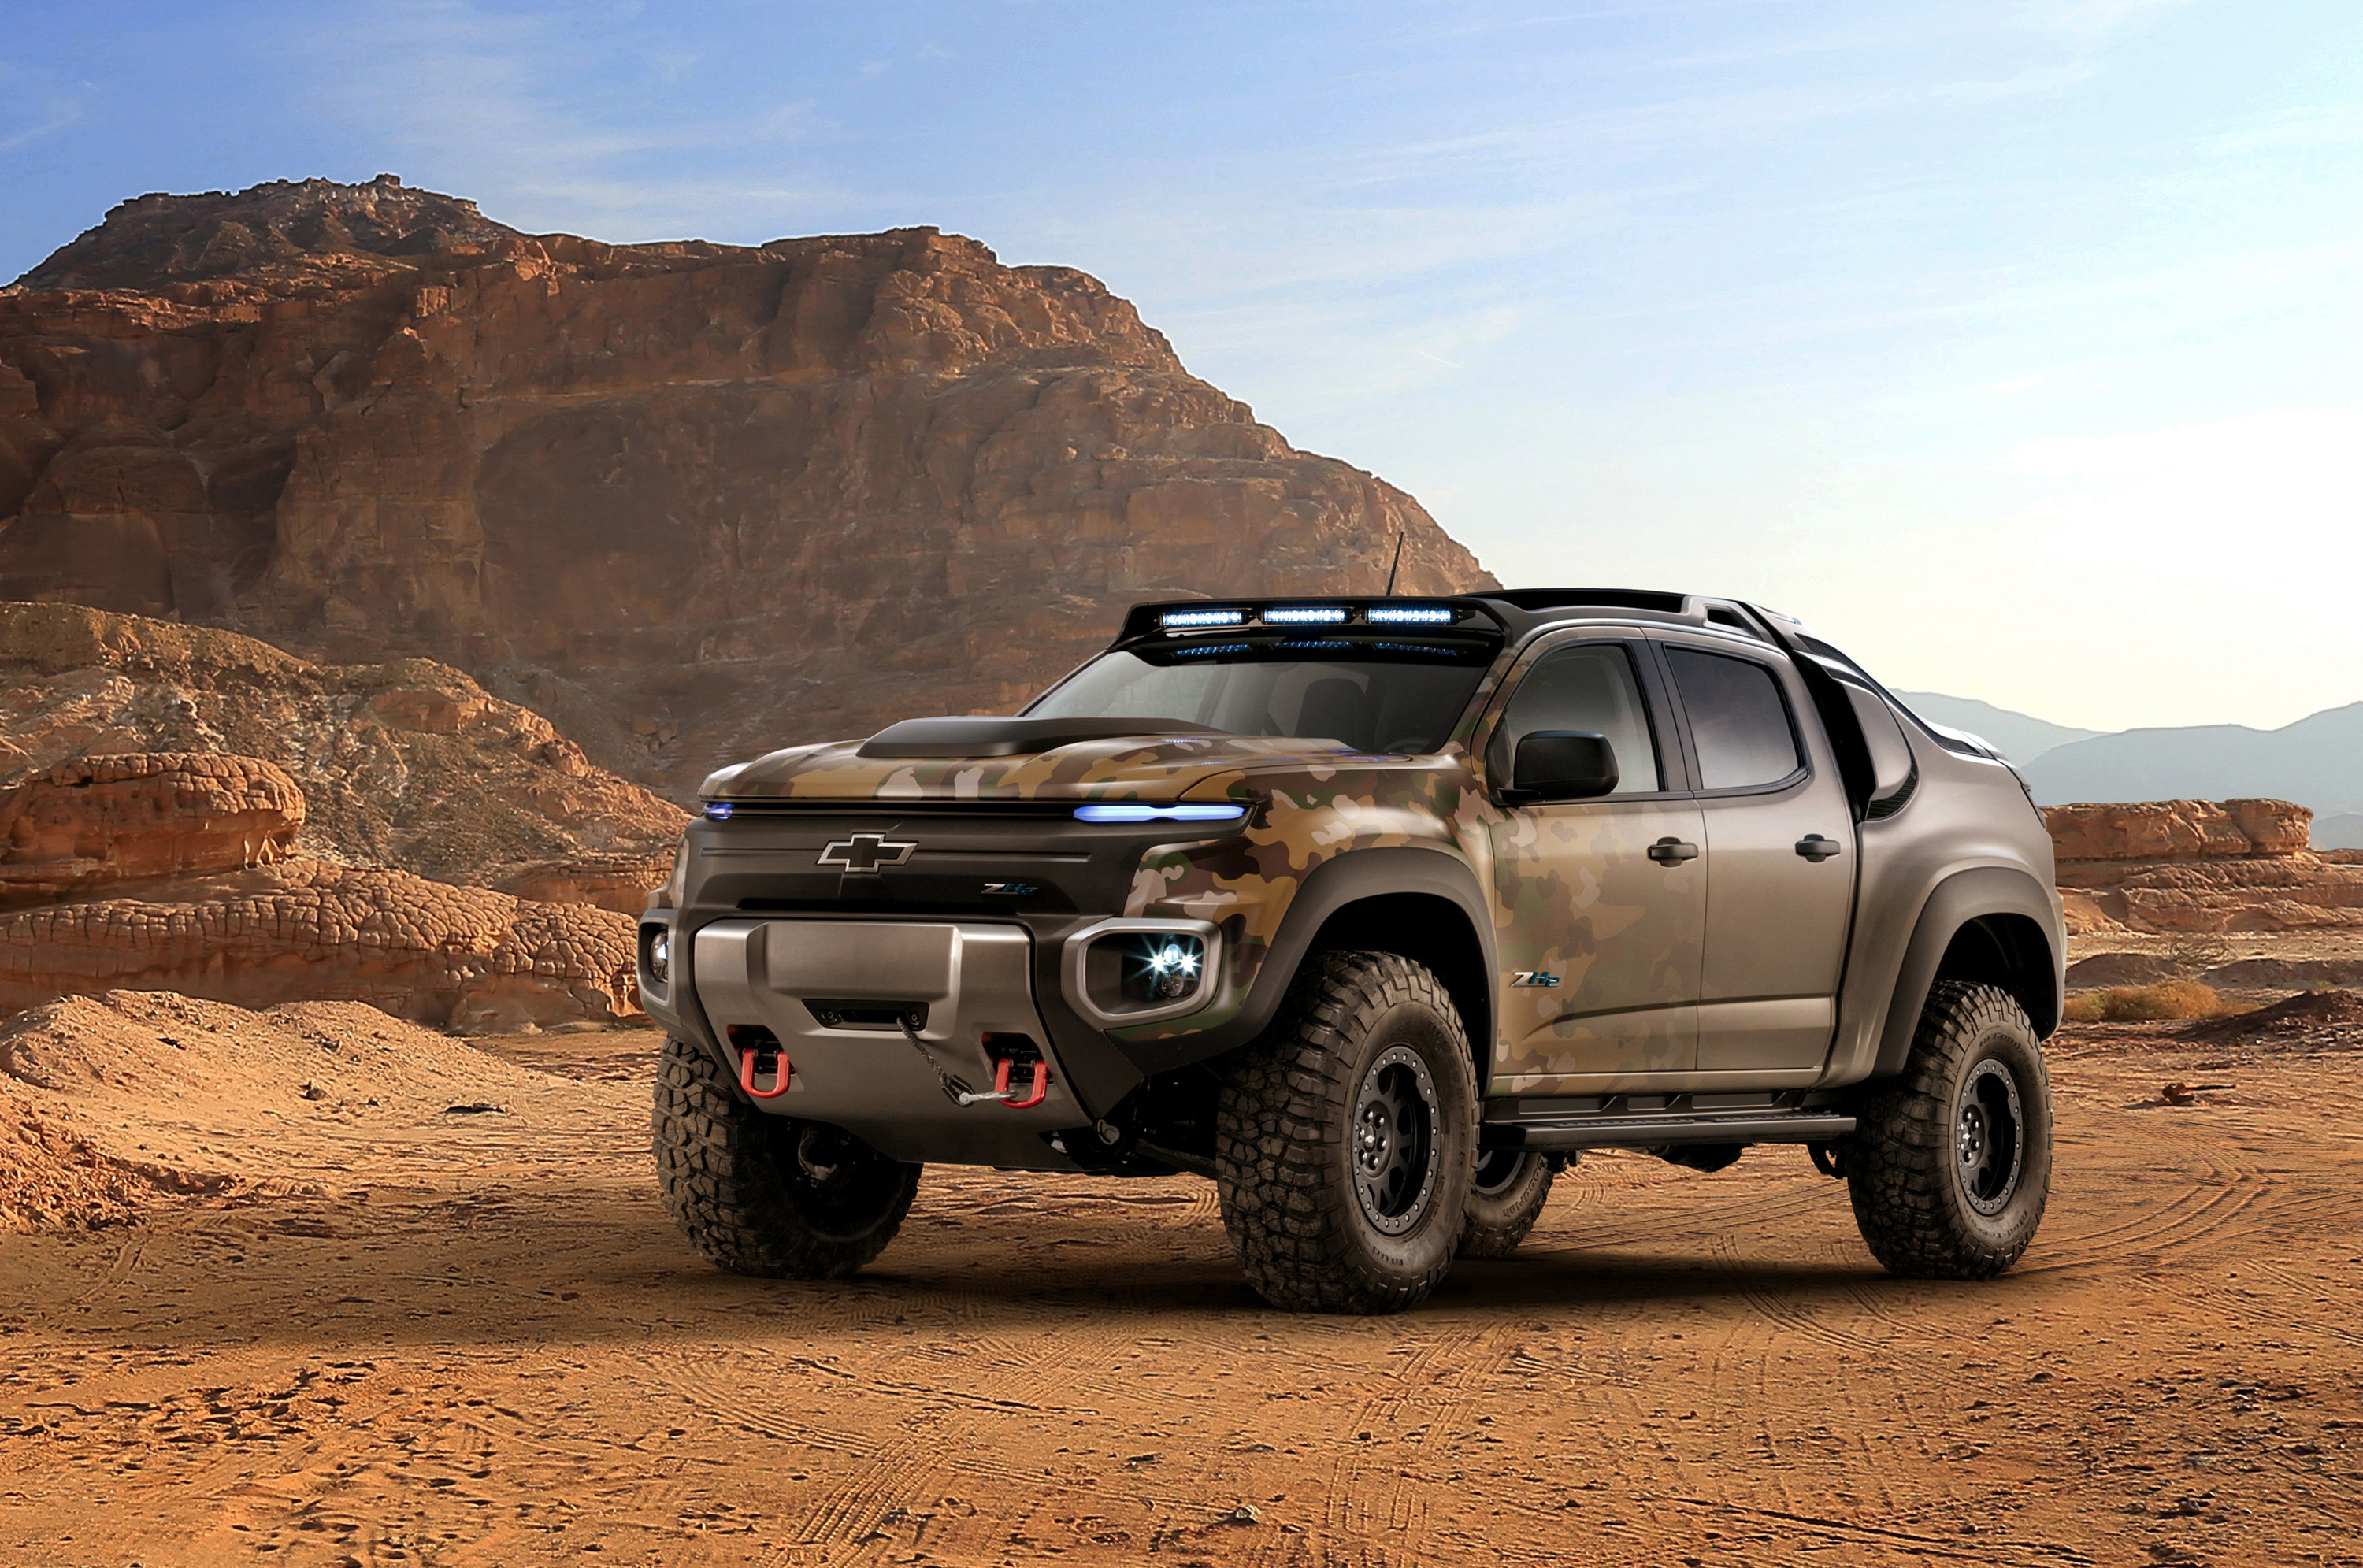 General Motors and the U.S. Army Tank Automotive Research, Development and Engineering Center (TARDEC) revealed the Chevrolet Colorado ZH2 fuel cell electric vehicle.